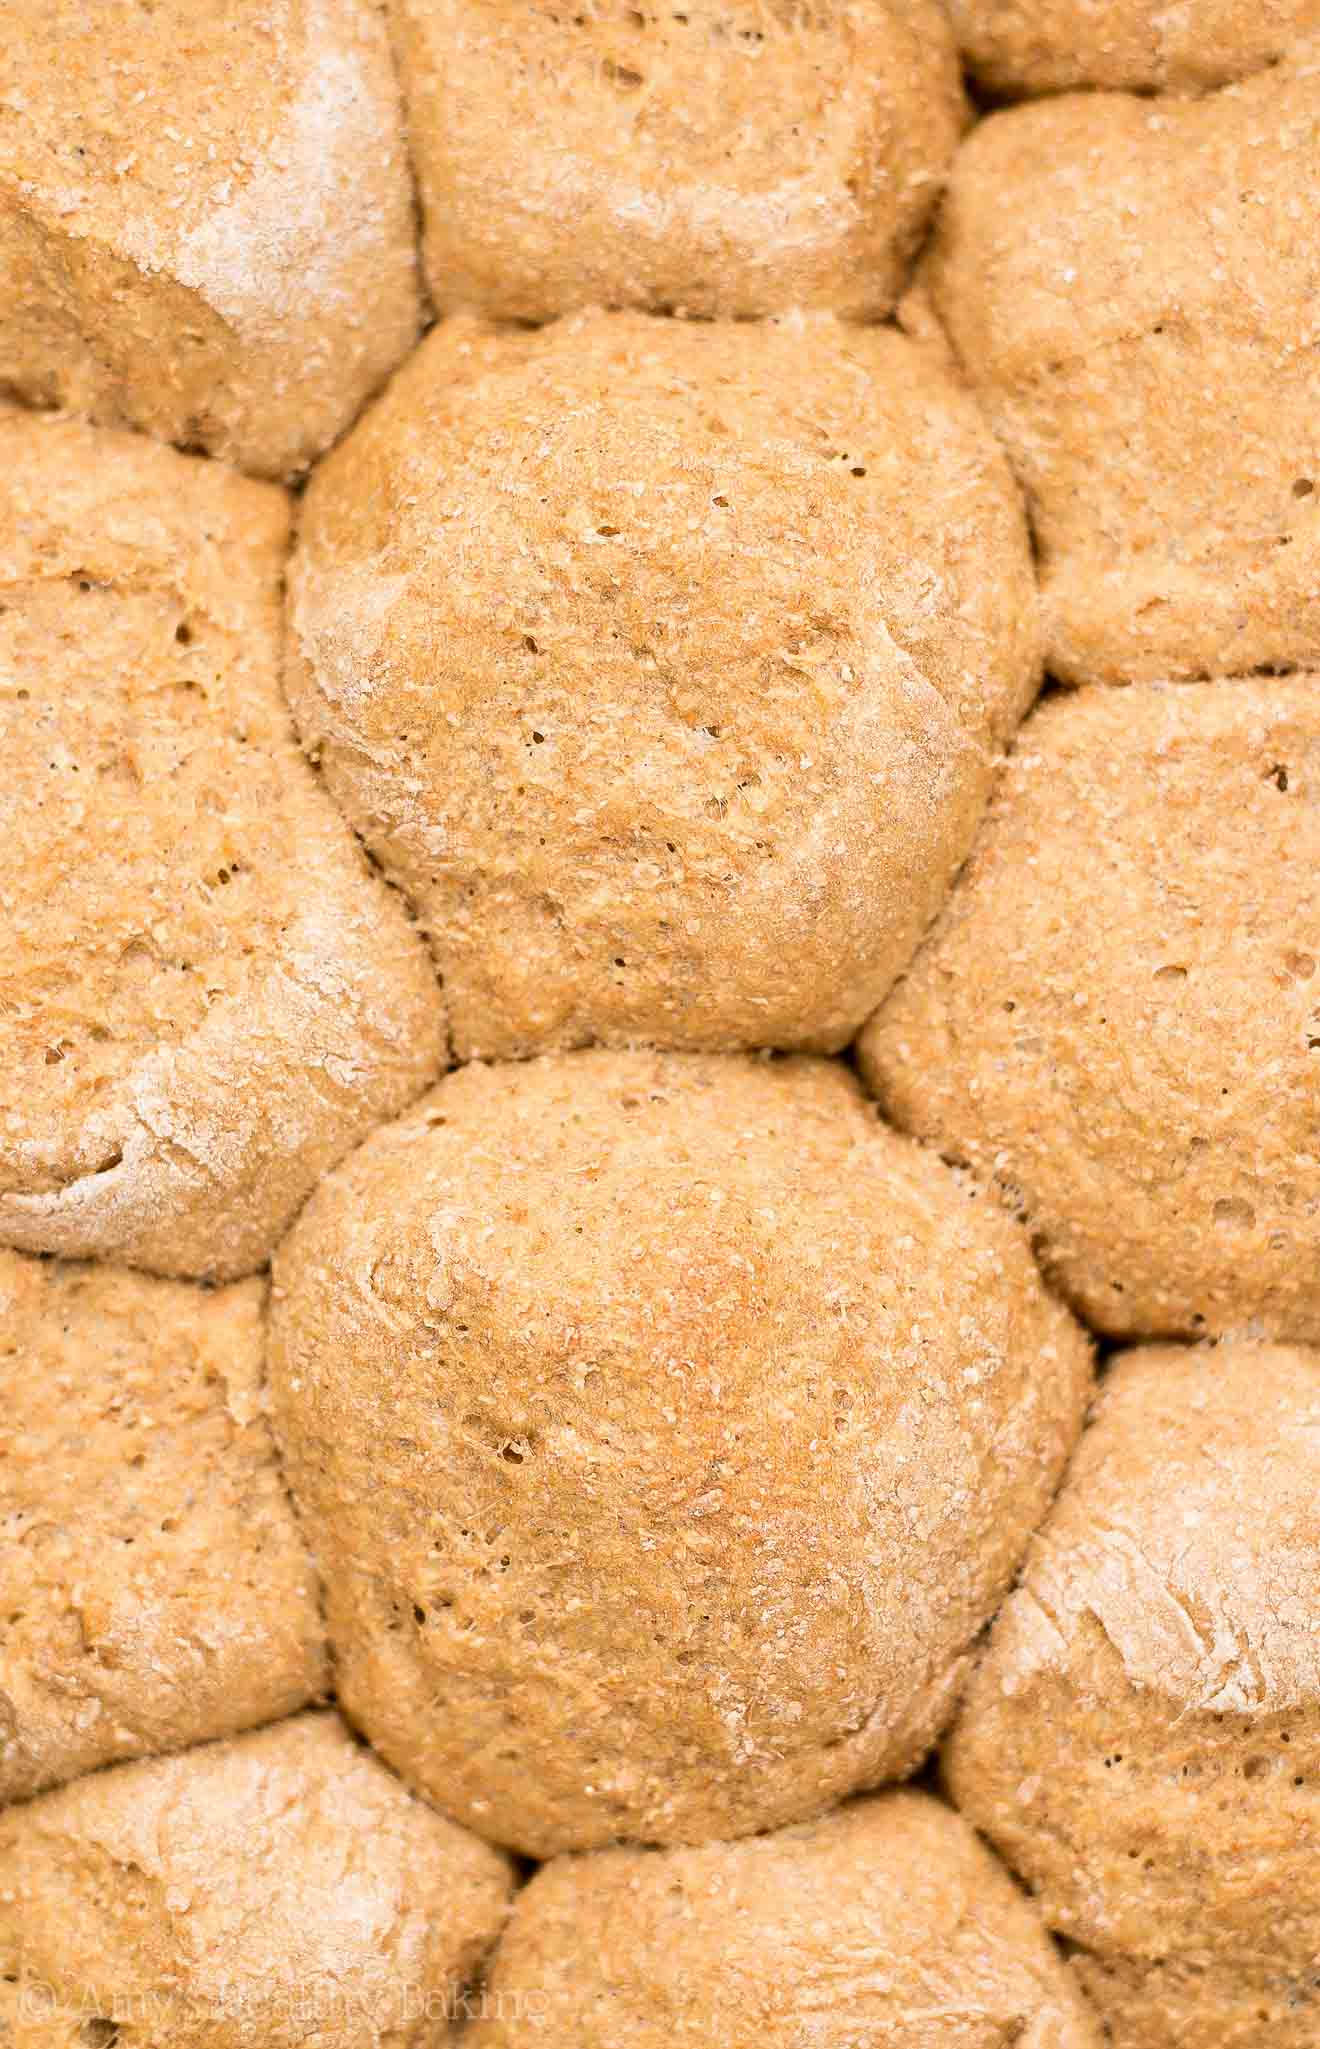 The ULTIMATE Healthy Whole Wheat Rolls -- only 56 calories! Tender, flavorful & absolutely AMAZING! You'll never need another recipe again! (Lots of step-by-step photos too. MUCH easier to make than I thought!) #healthy #recipe #cleaneating #vegan